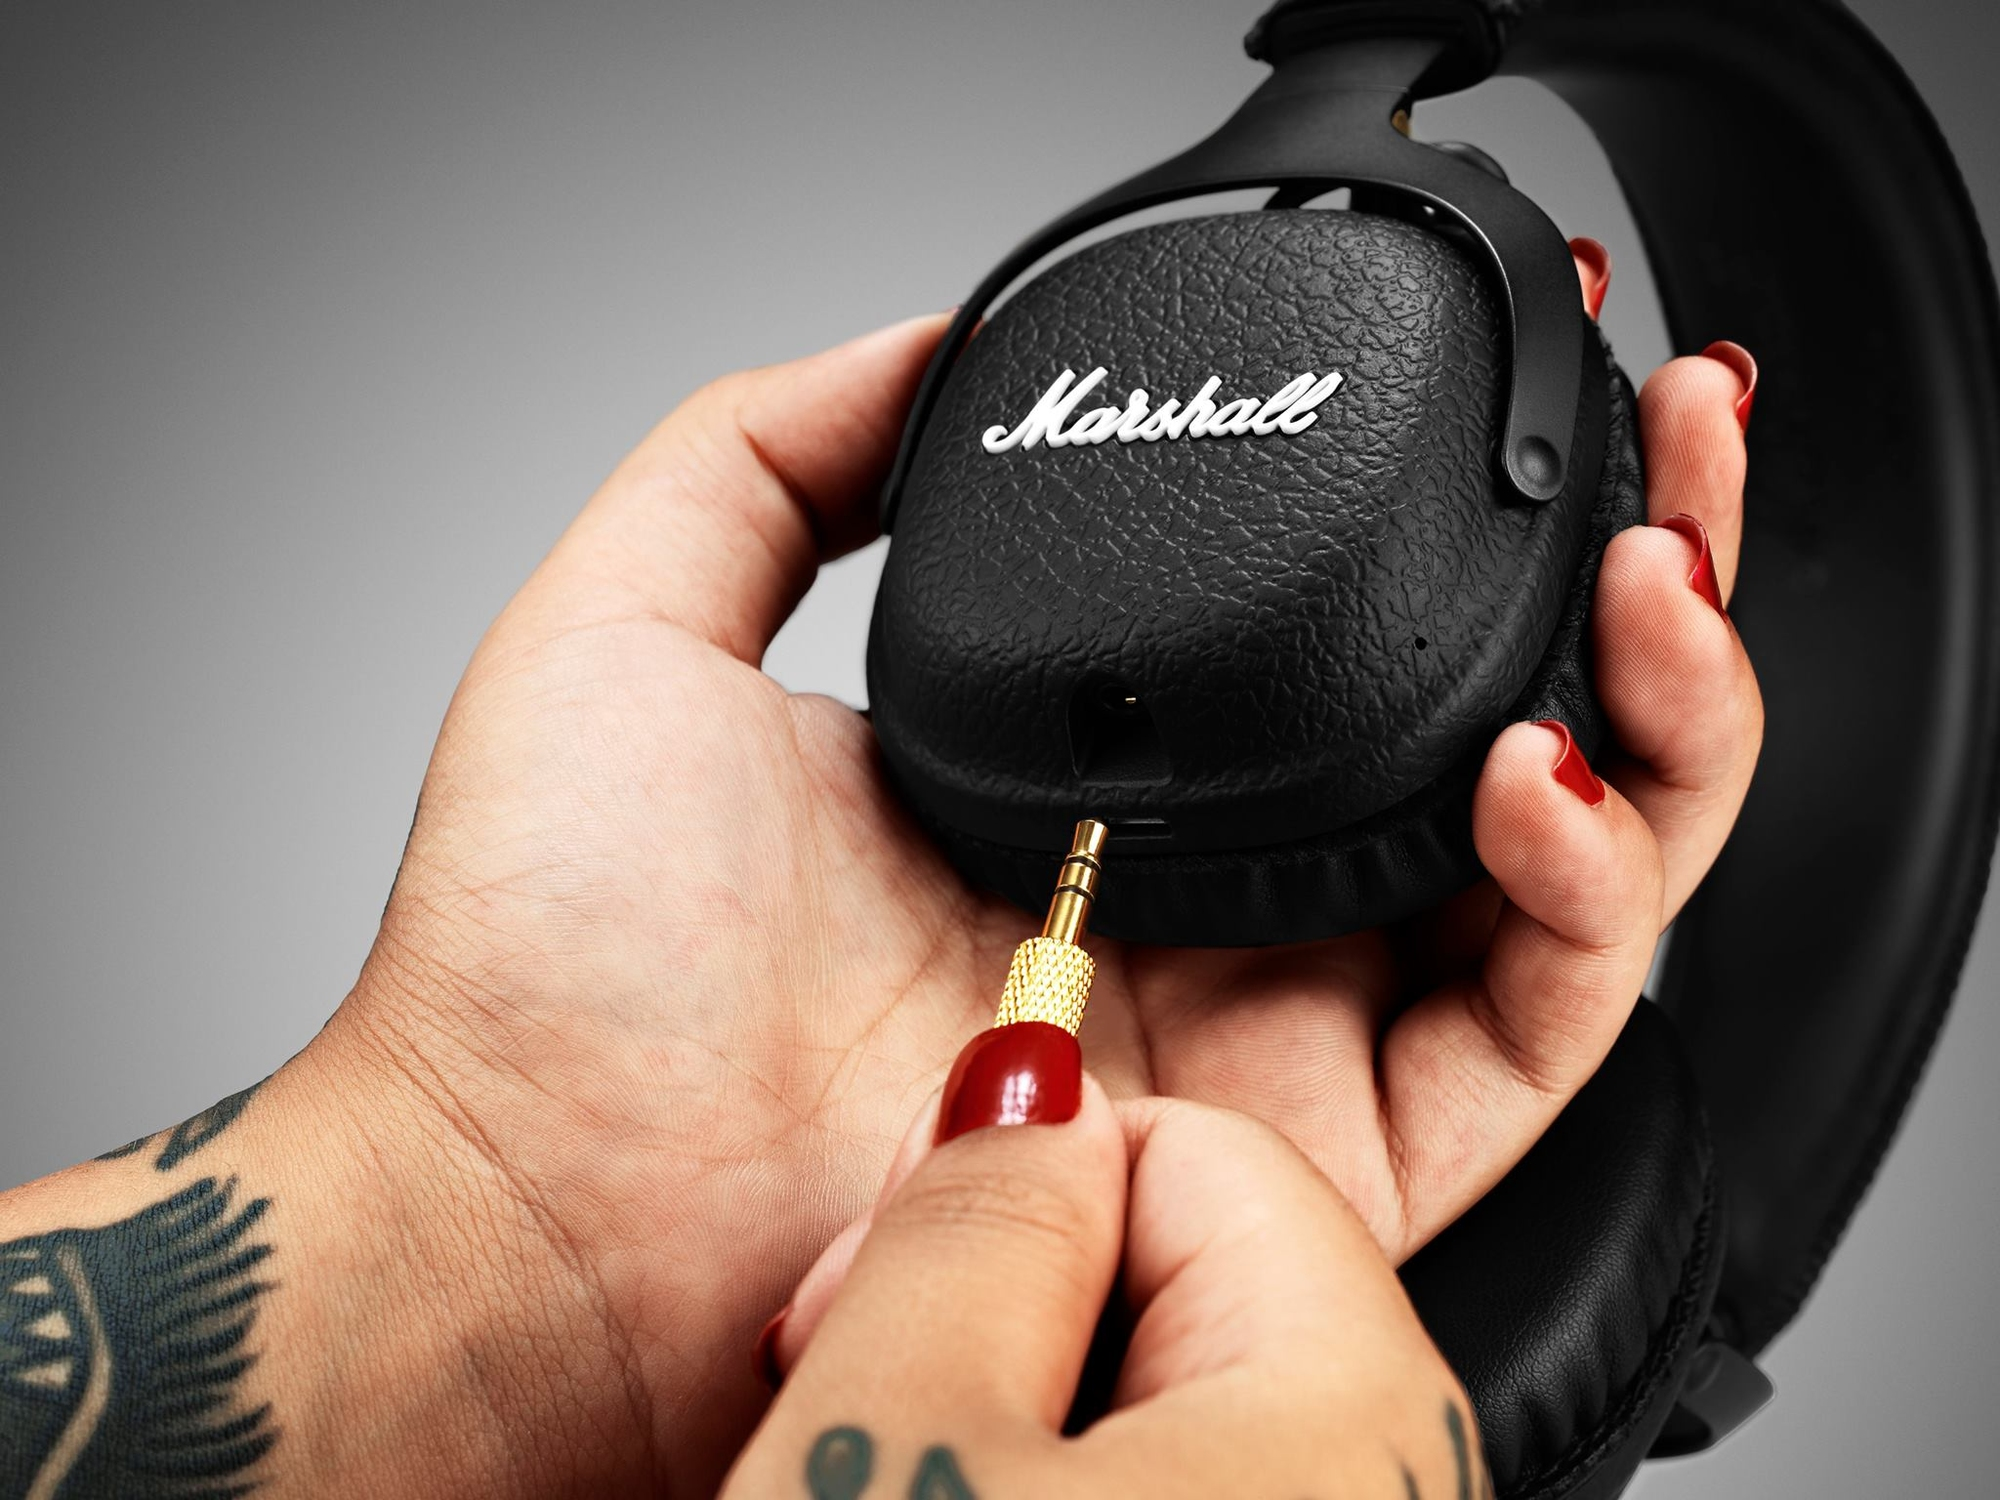 mid wireless plug Review: Pom Pro Music Company Excels With New Bluetooth Headphones